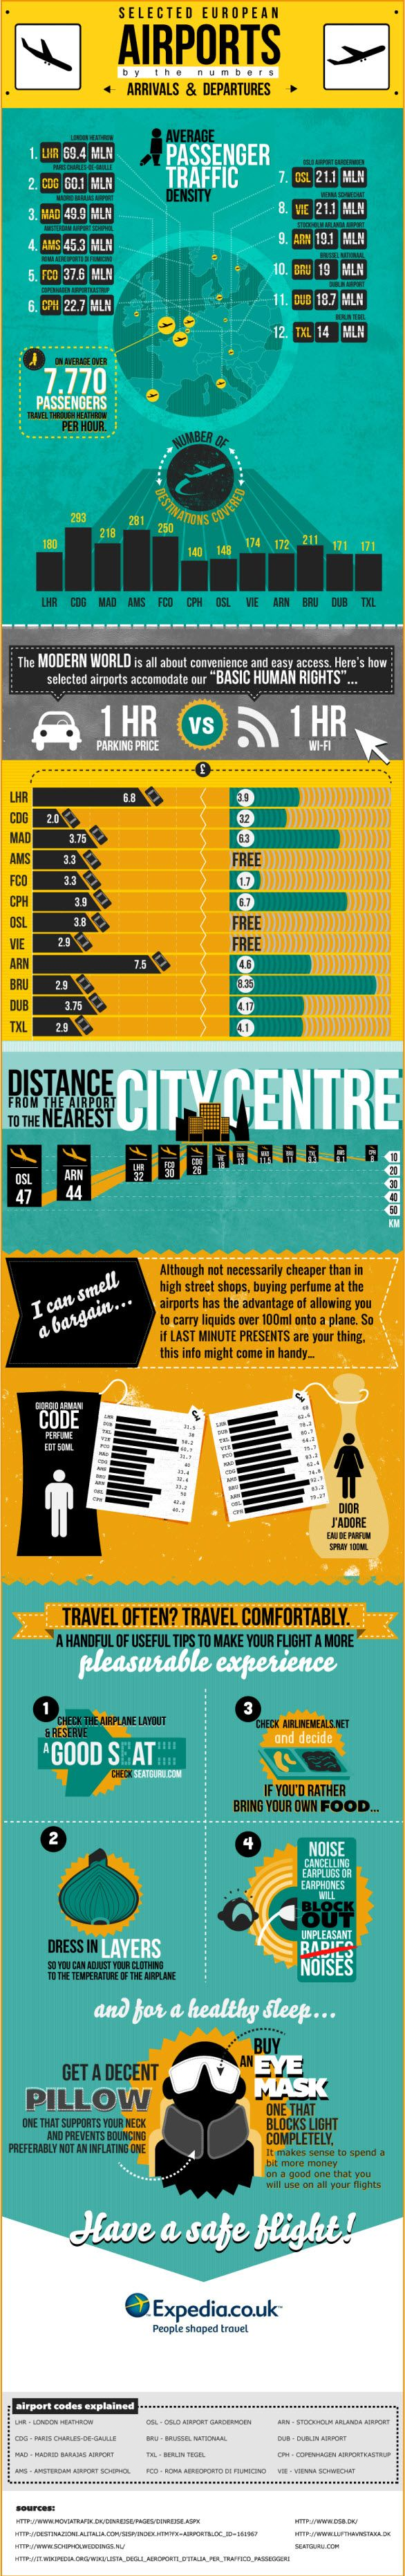 Airports infographic Internet Site, European Flight,  Website, Infographic Travel, Selection European, Flight Infographic, European Airports, Travel Infographic, Infographic Pin